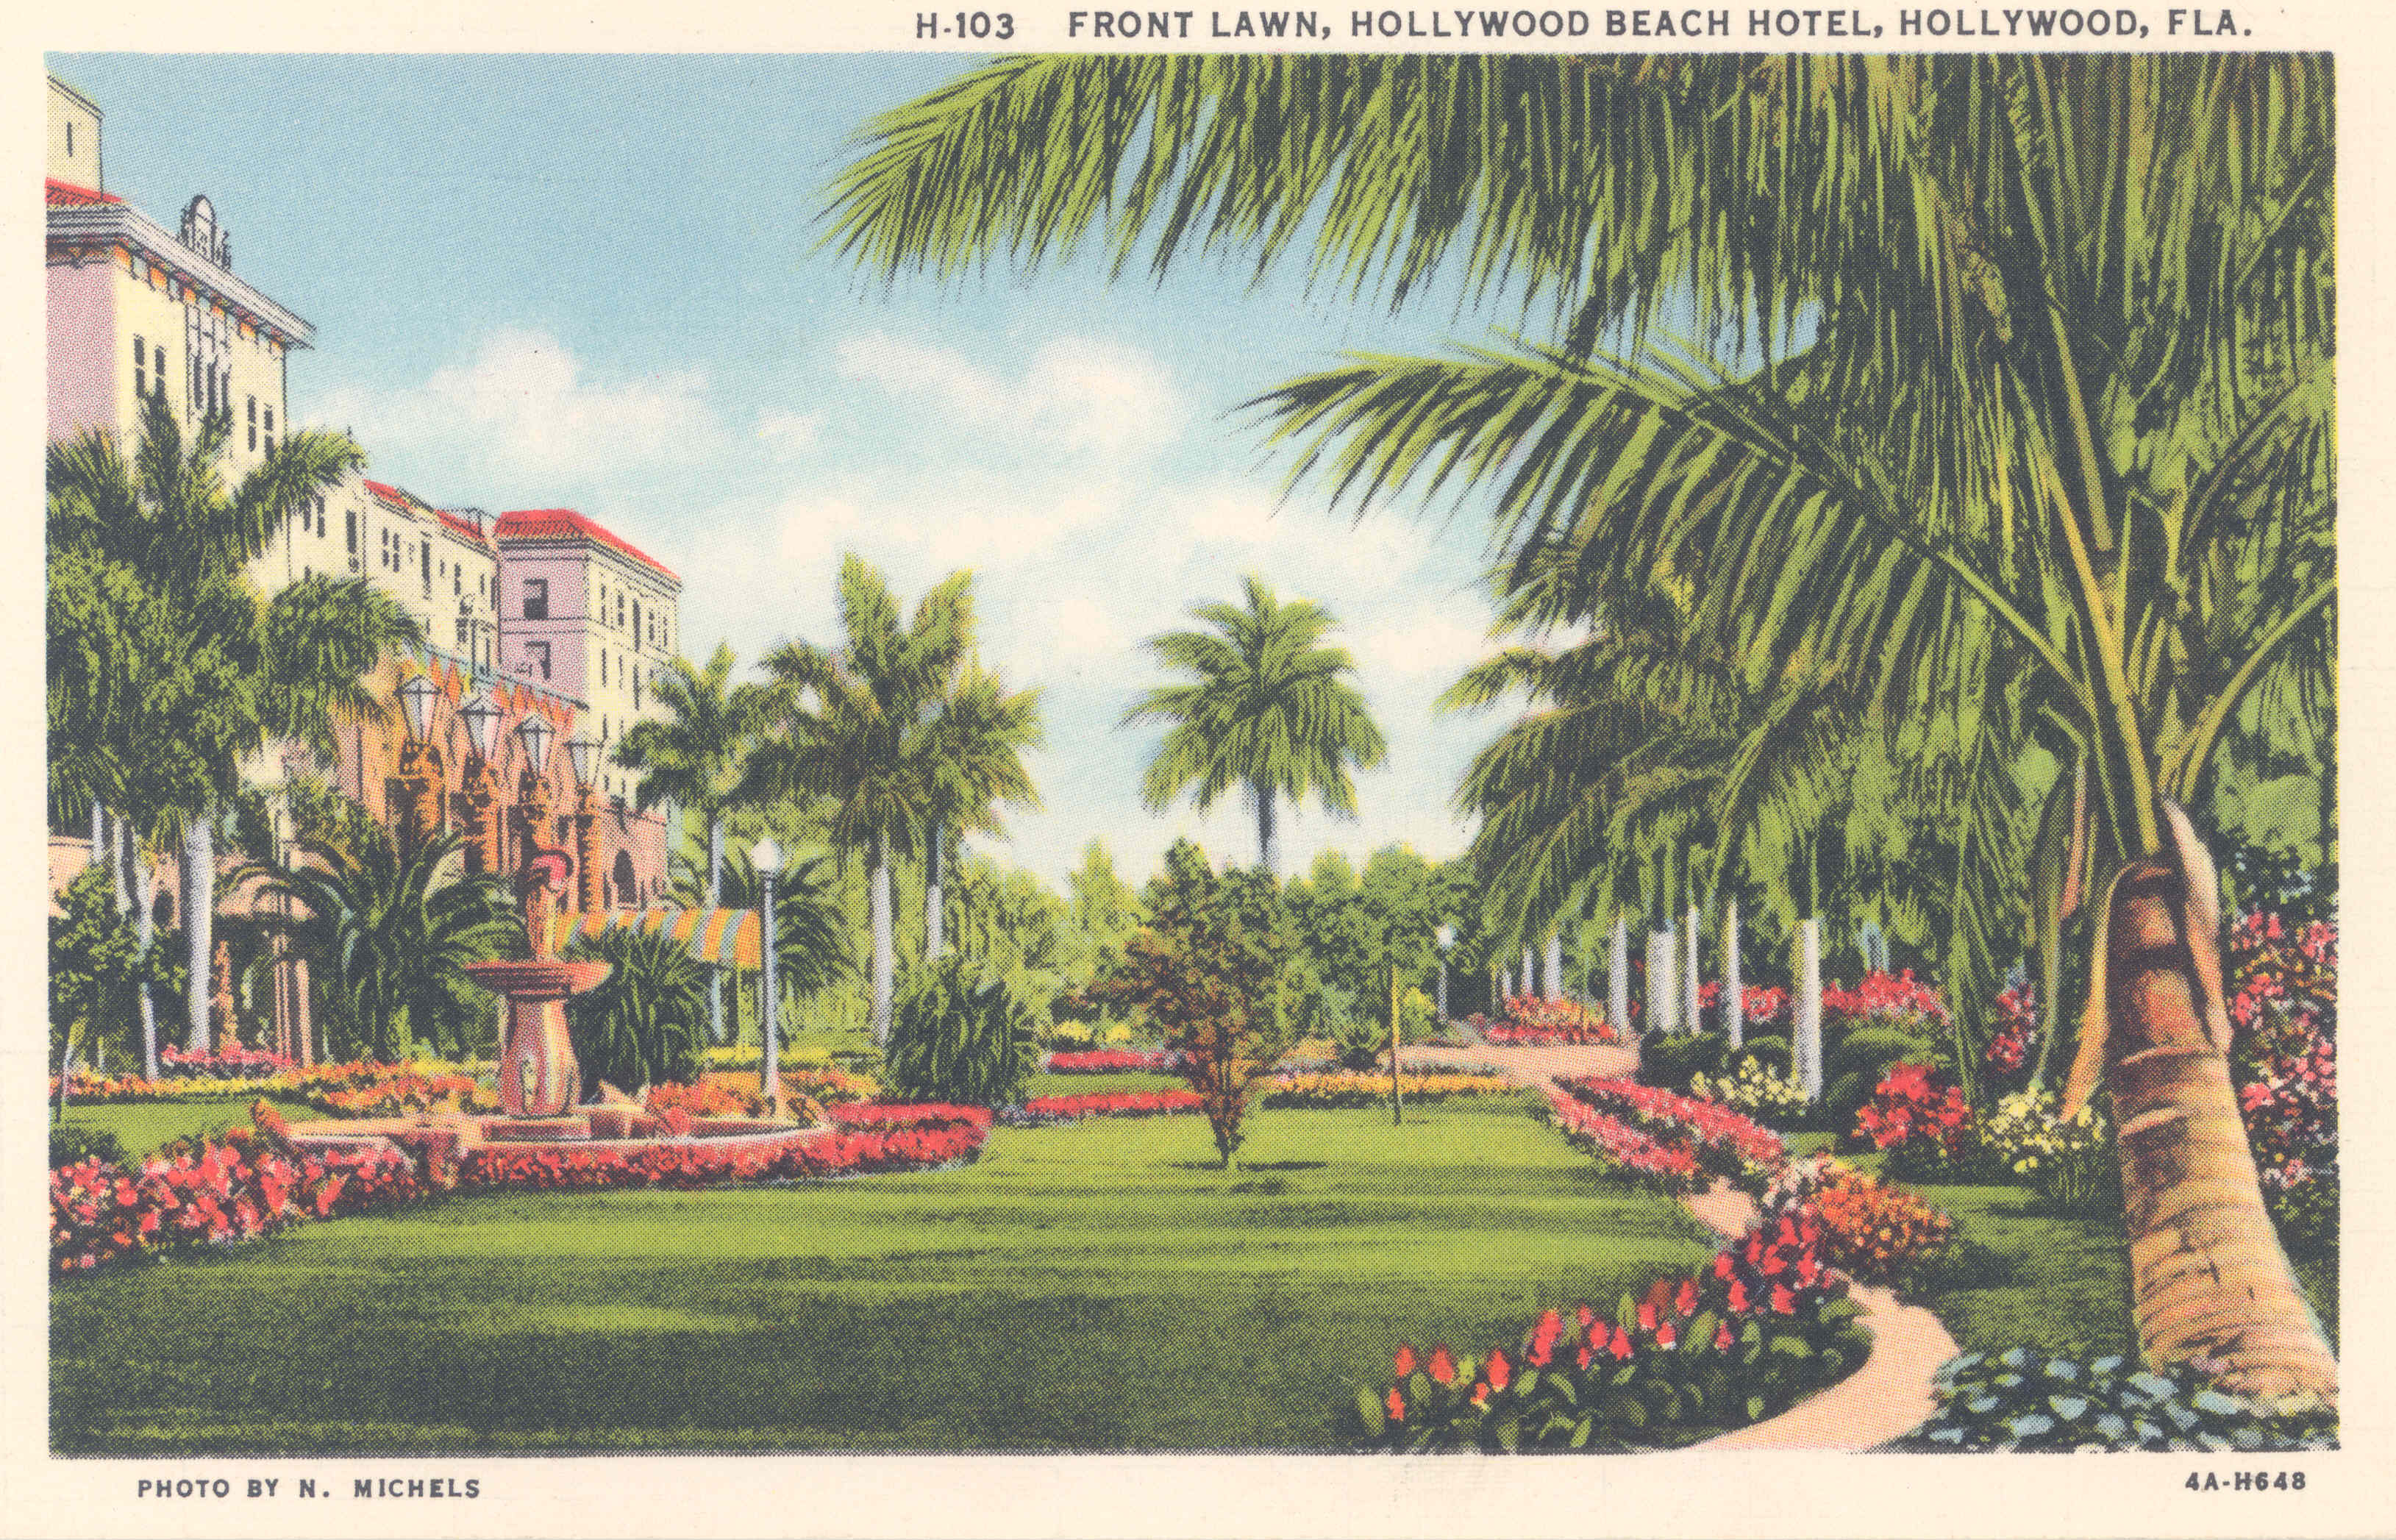 Hollywood Beach Hotel Front Lawn